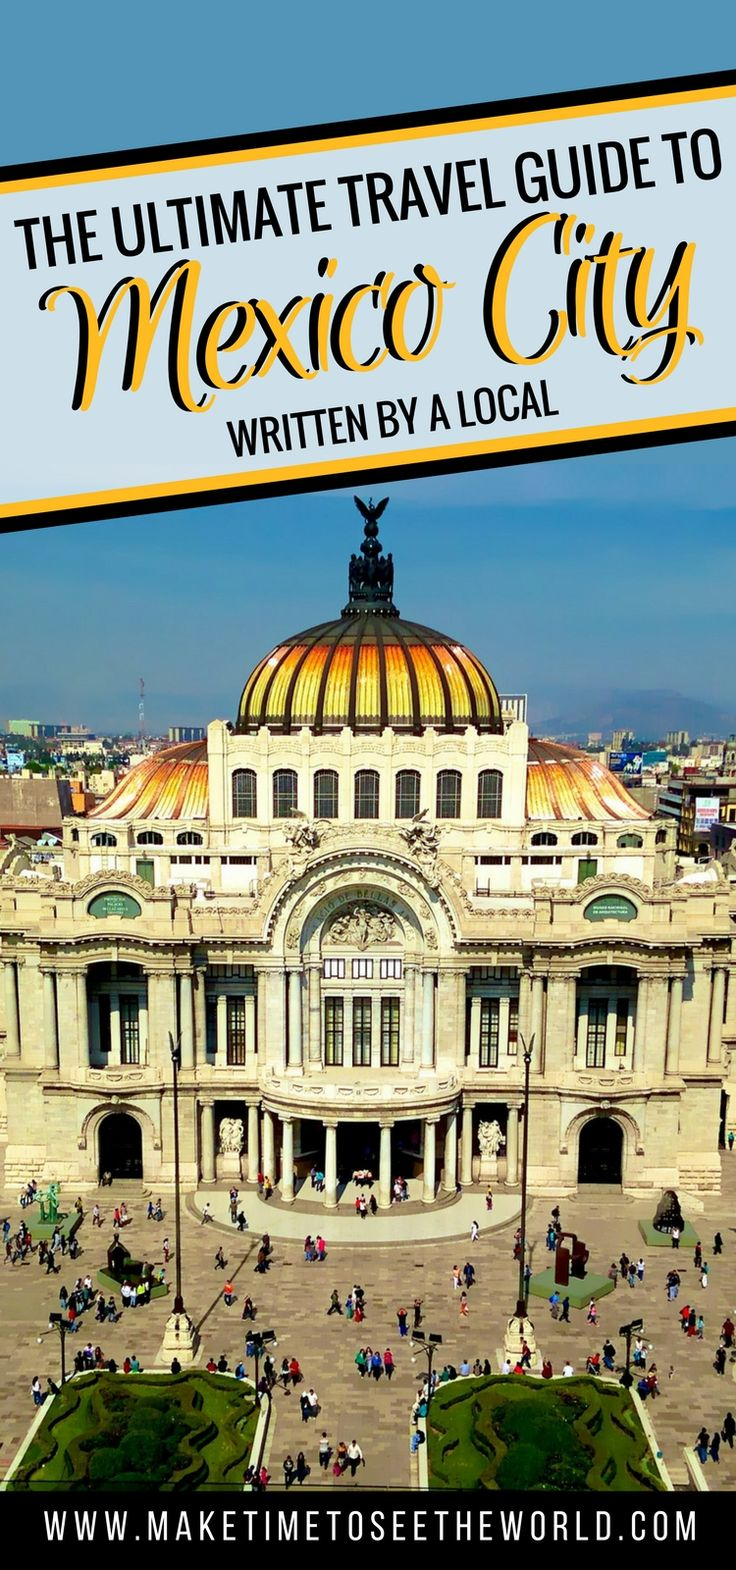 Heading to Mexico City? We've got all the best things to do & places to visit plus where to stay, as written by a local who knows the place inside & out! ******************************************************************************************* Mexico City Tour | Mexico City Things To Do | Mexico City Places to Visit | Awesome Things To Do in Mexico City | Things to do in Mexico City | day trips from Mexico City #Mexico #MexicoCity